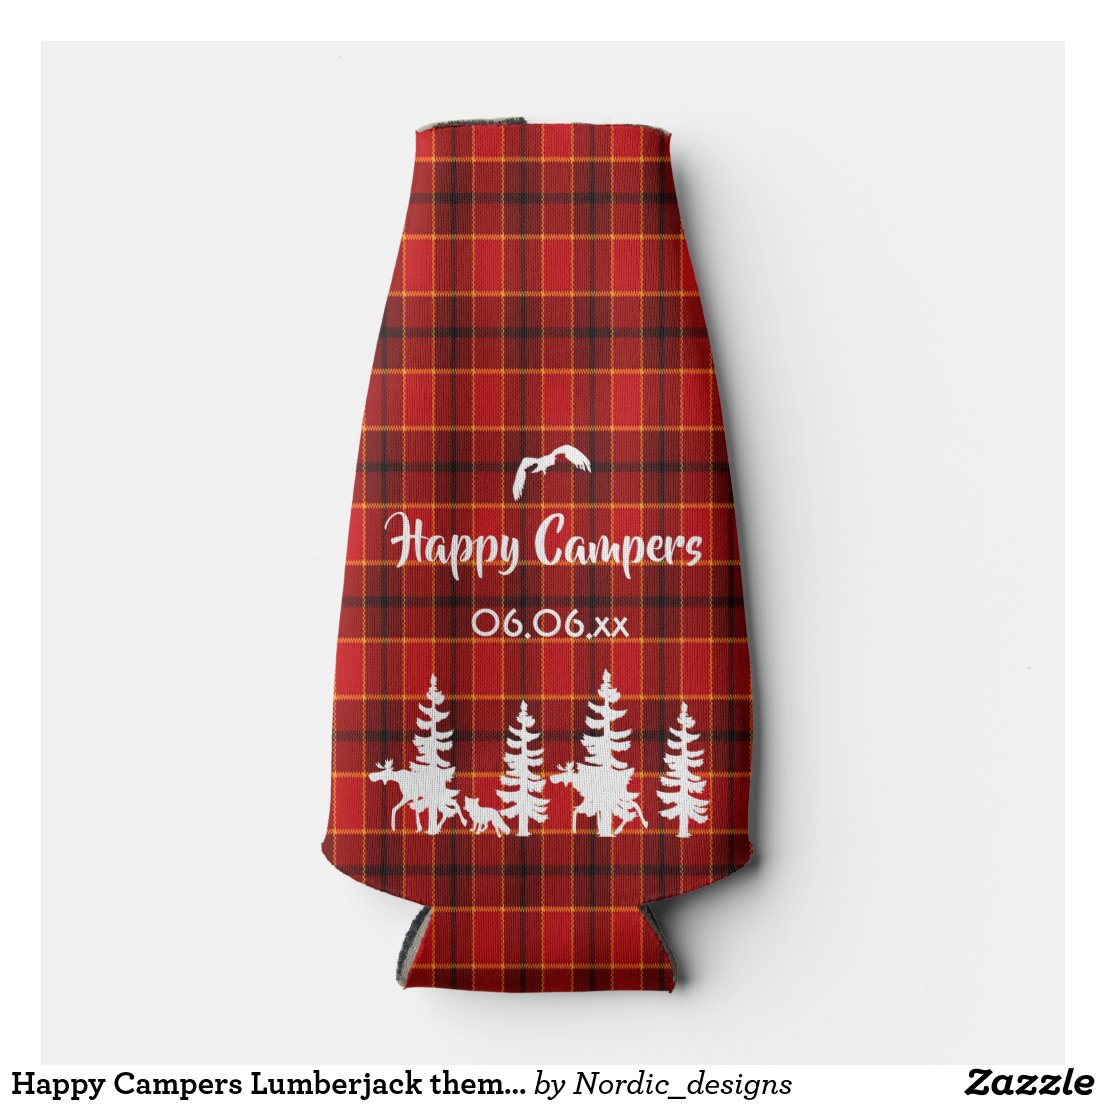 Happy Campers Lumberjack theme red plaid pattern